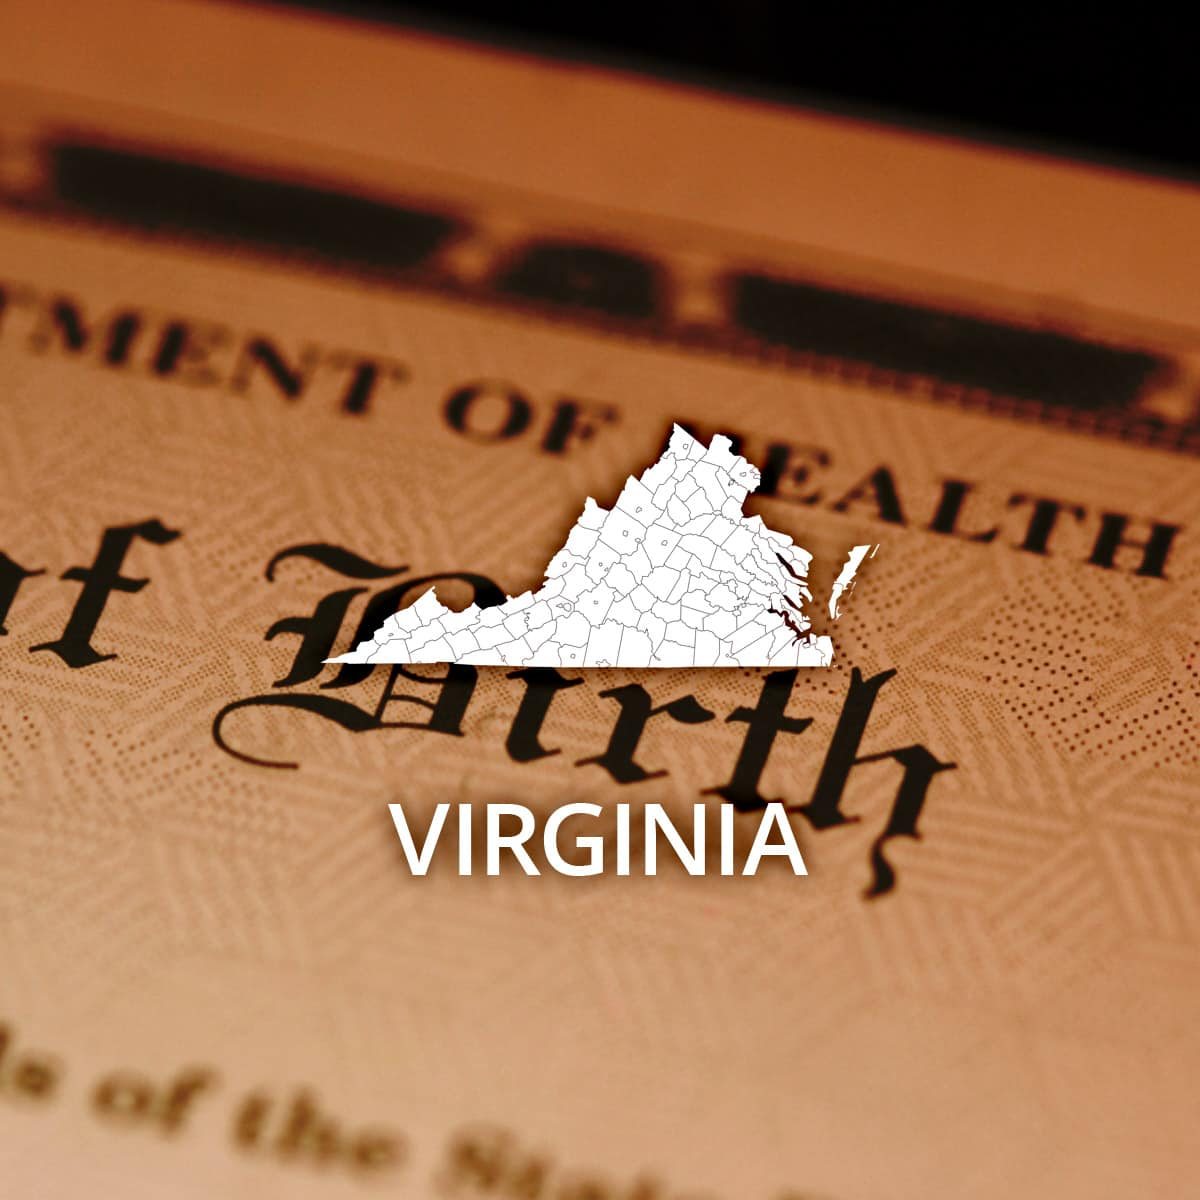 Where To Obtain A Virginia Birth Certificate